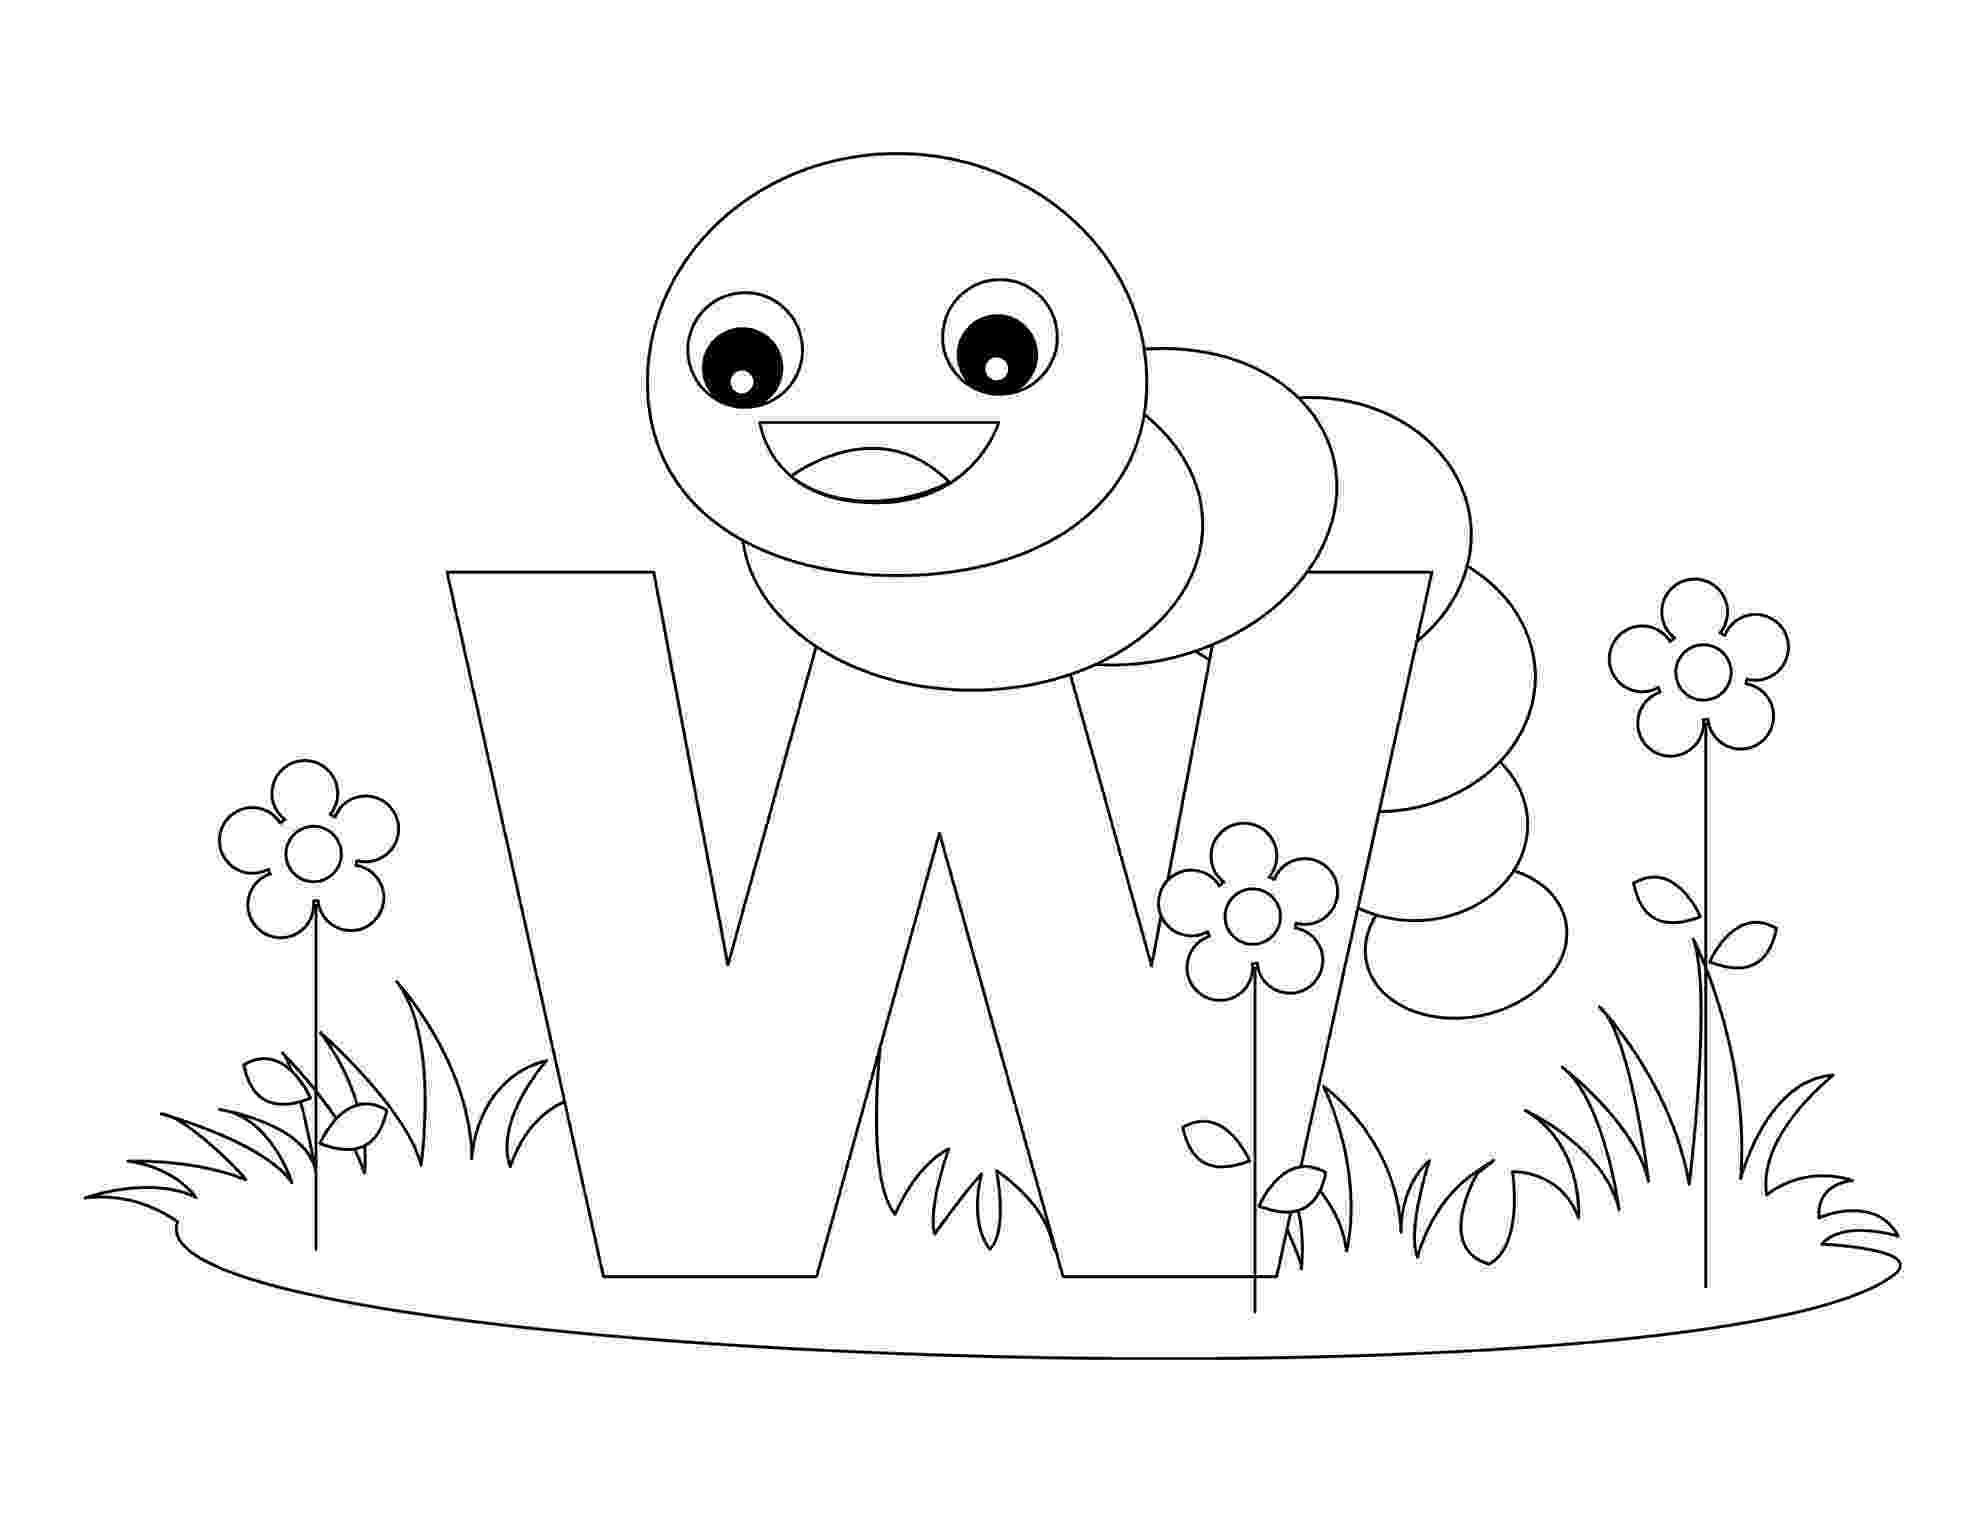 coloring pictures of alphabet letters free printable alphabet coloring pages for kids best pictures of alphabet letters coloring